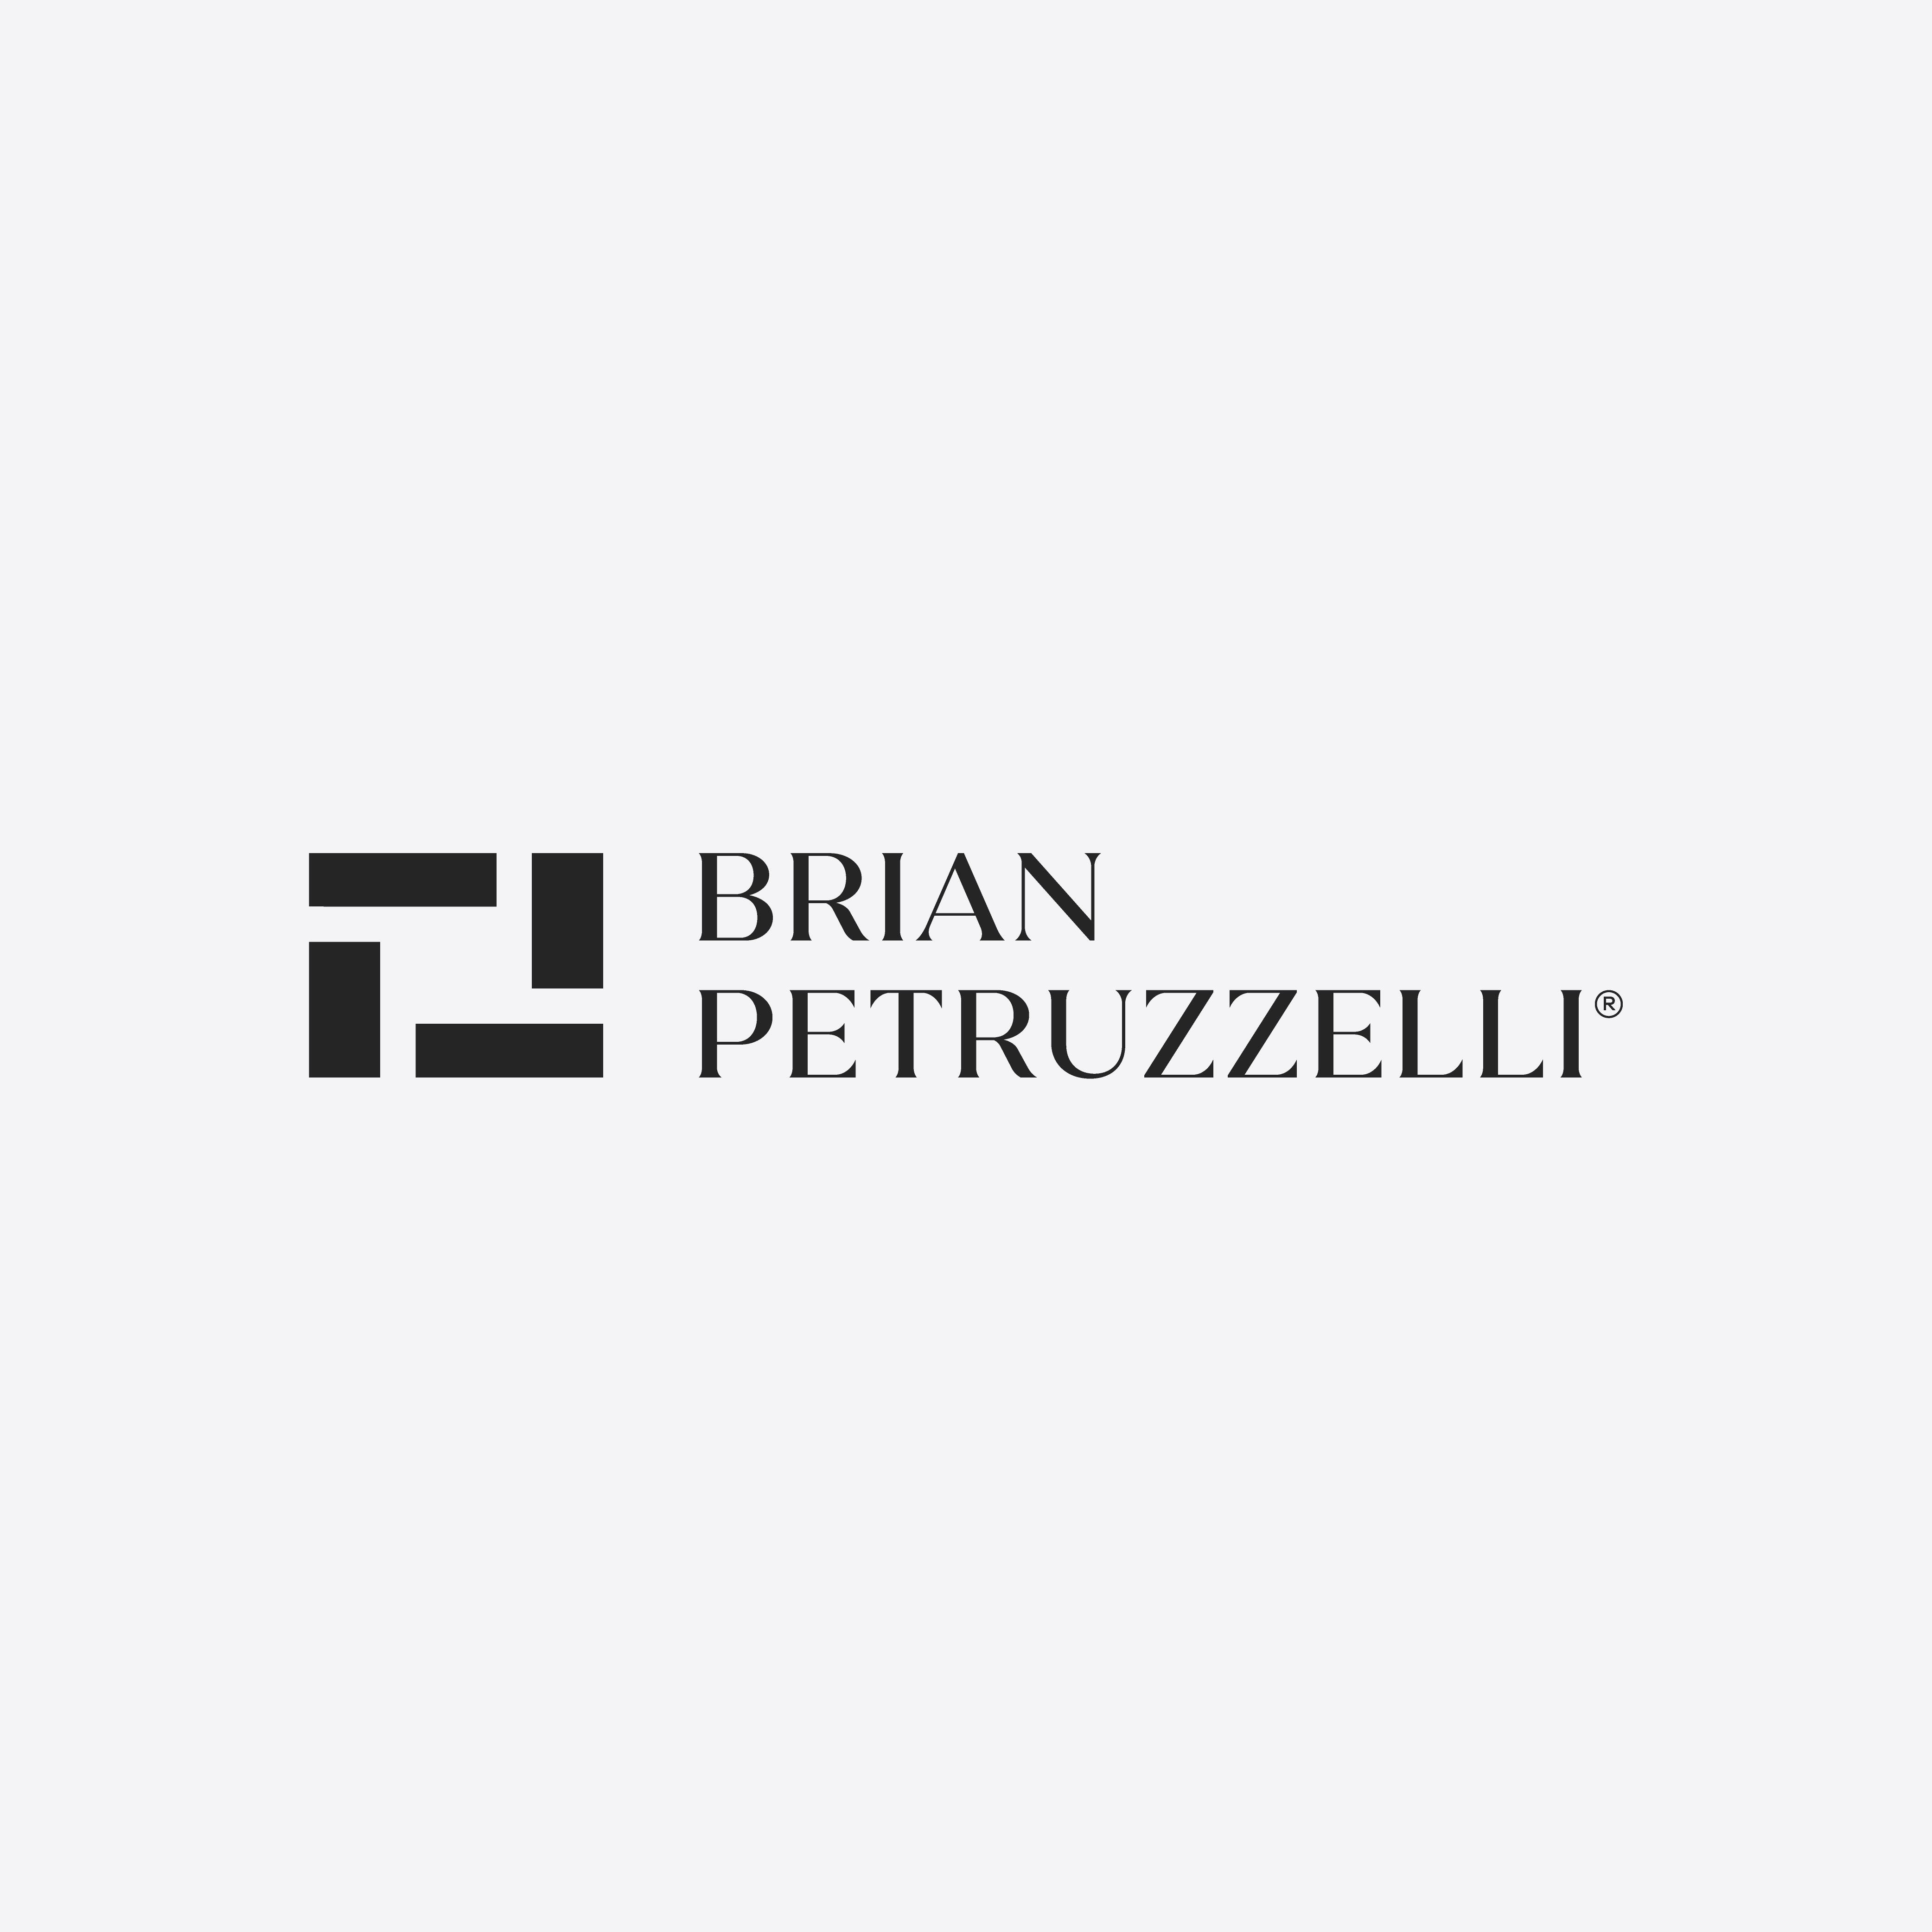 Sophisticated and clean real estate logo